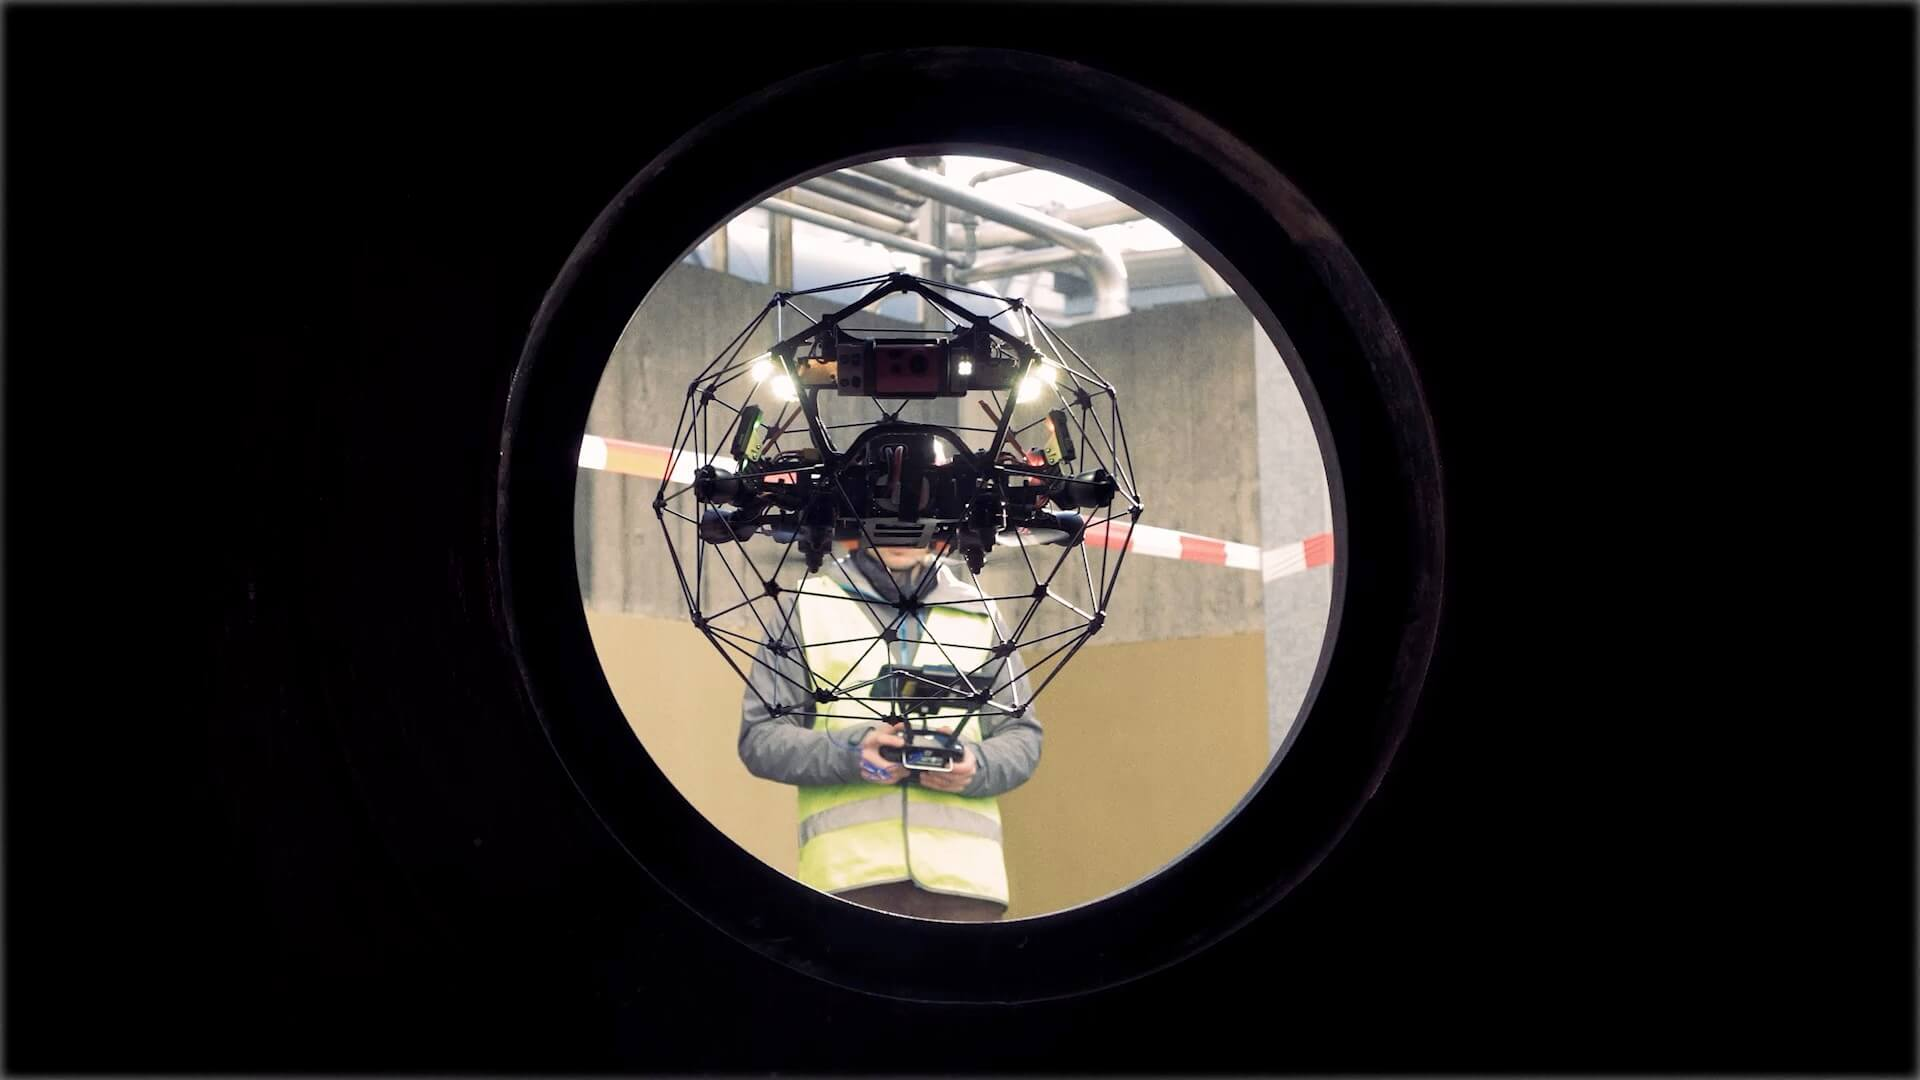 Inspect & Explore: Confined Space Drone Inspections with Elios 2 Drone Technology